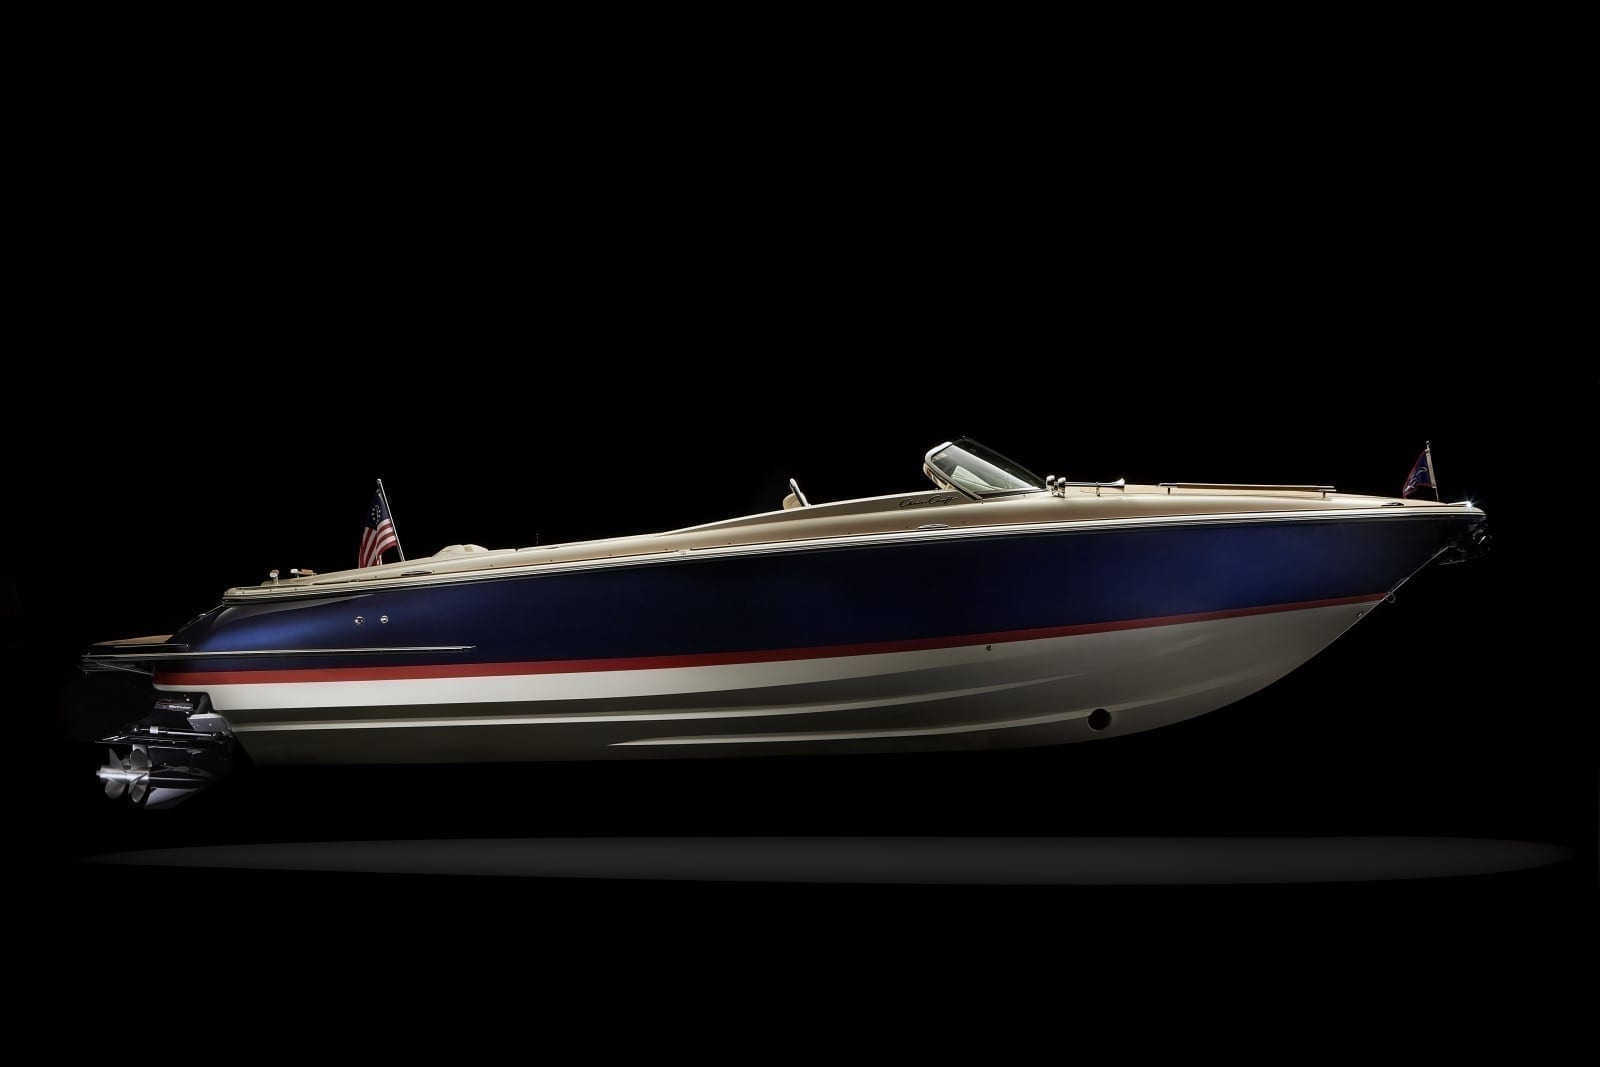 Chris Craft Corsair 30 Starboard Profile View